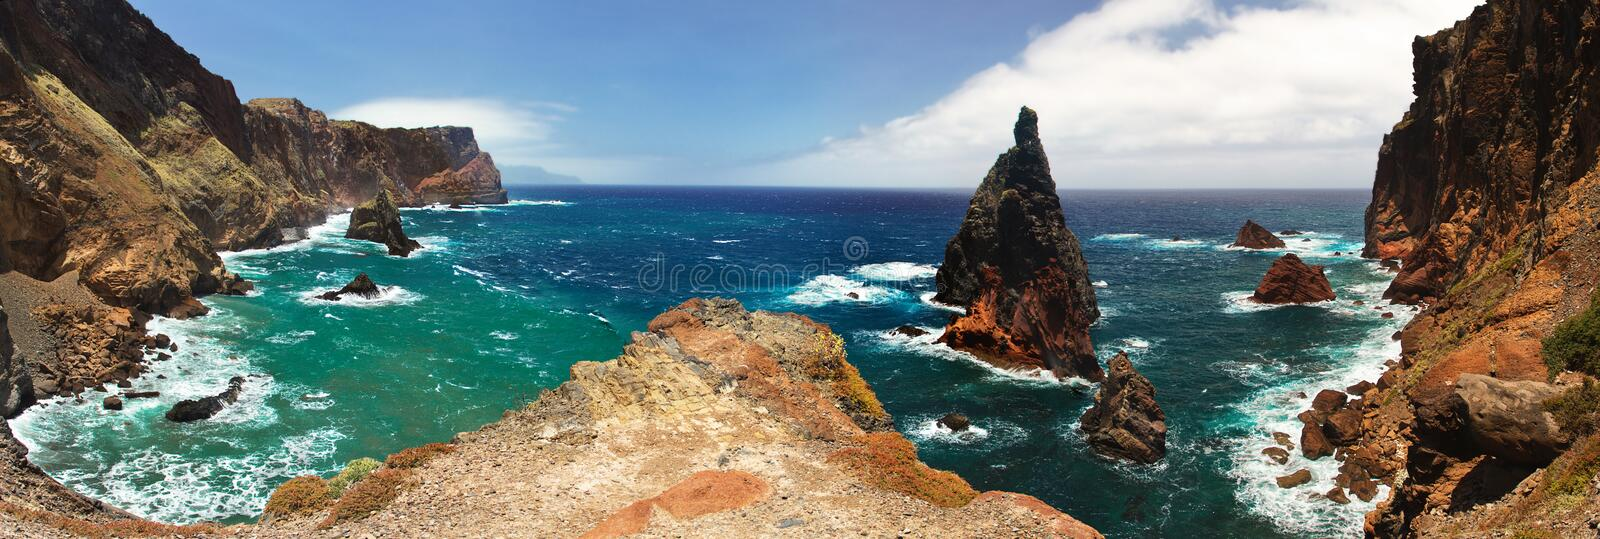 View of one of the many rocky bays of Madeira royalty free stock images